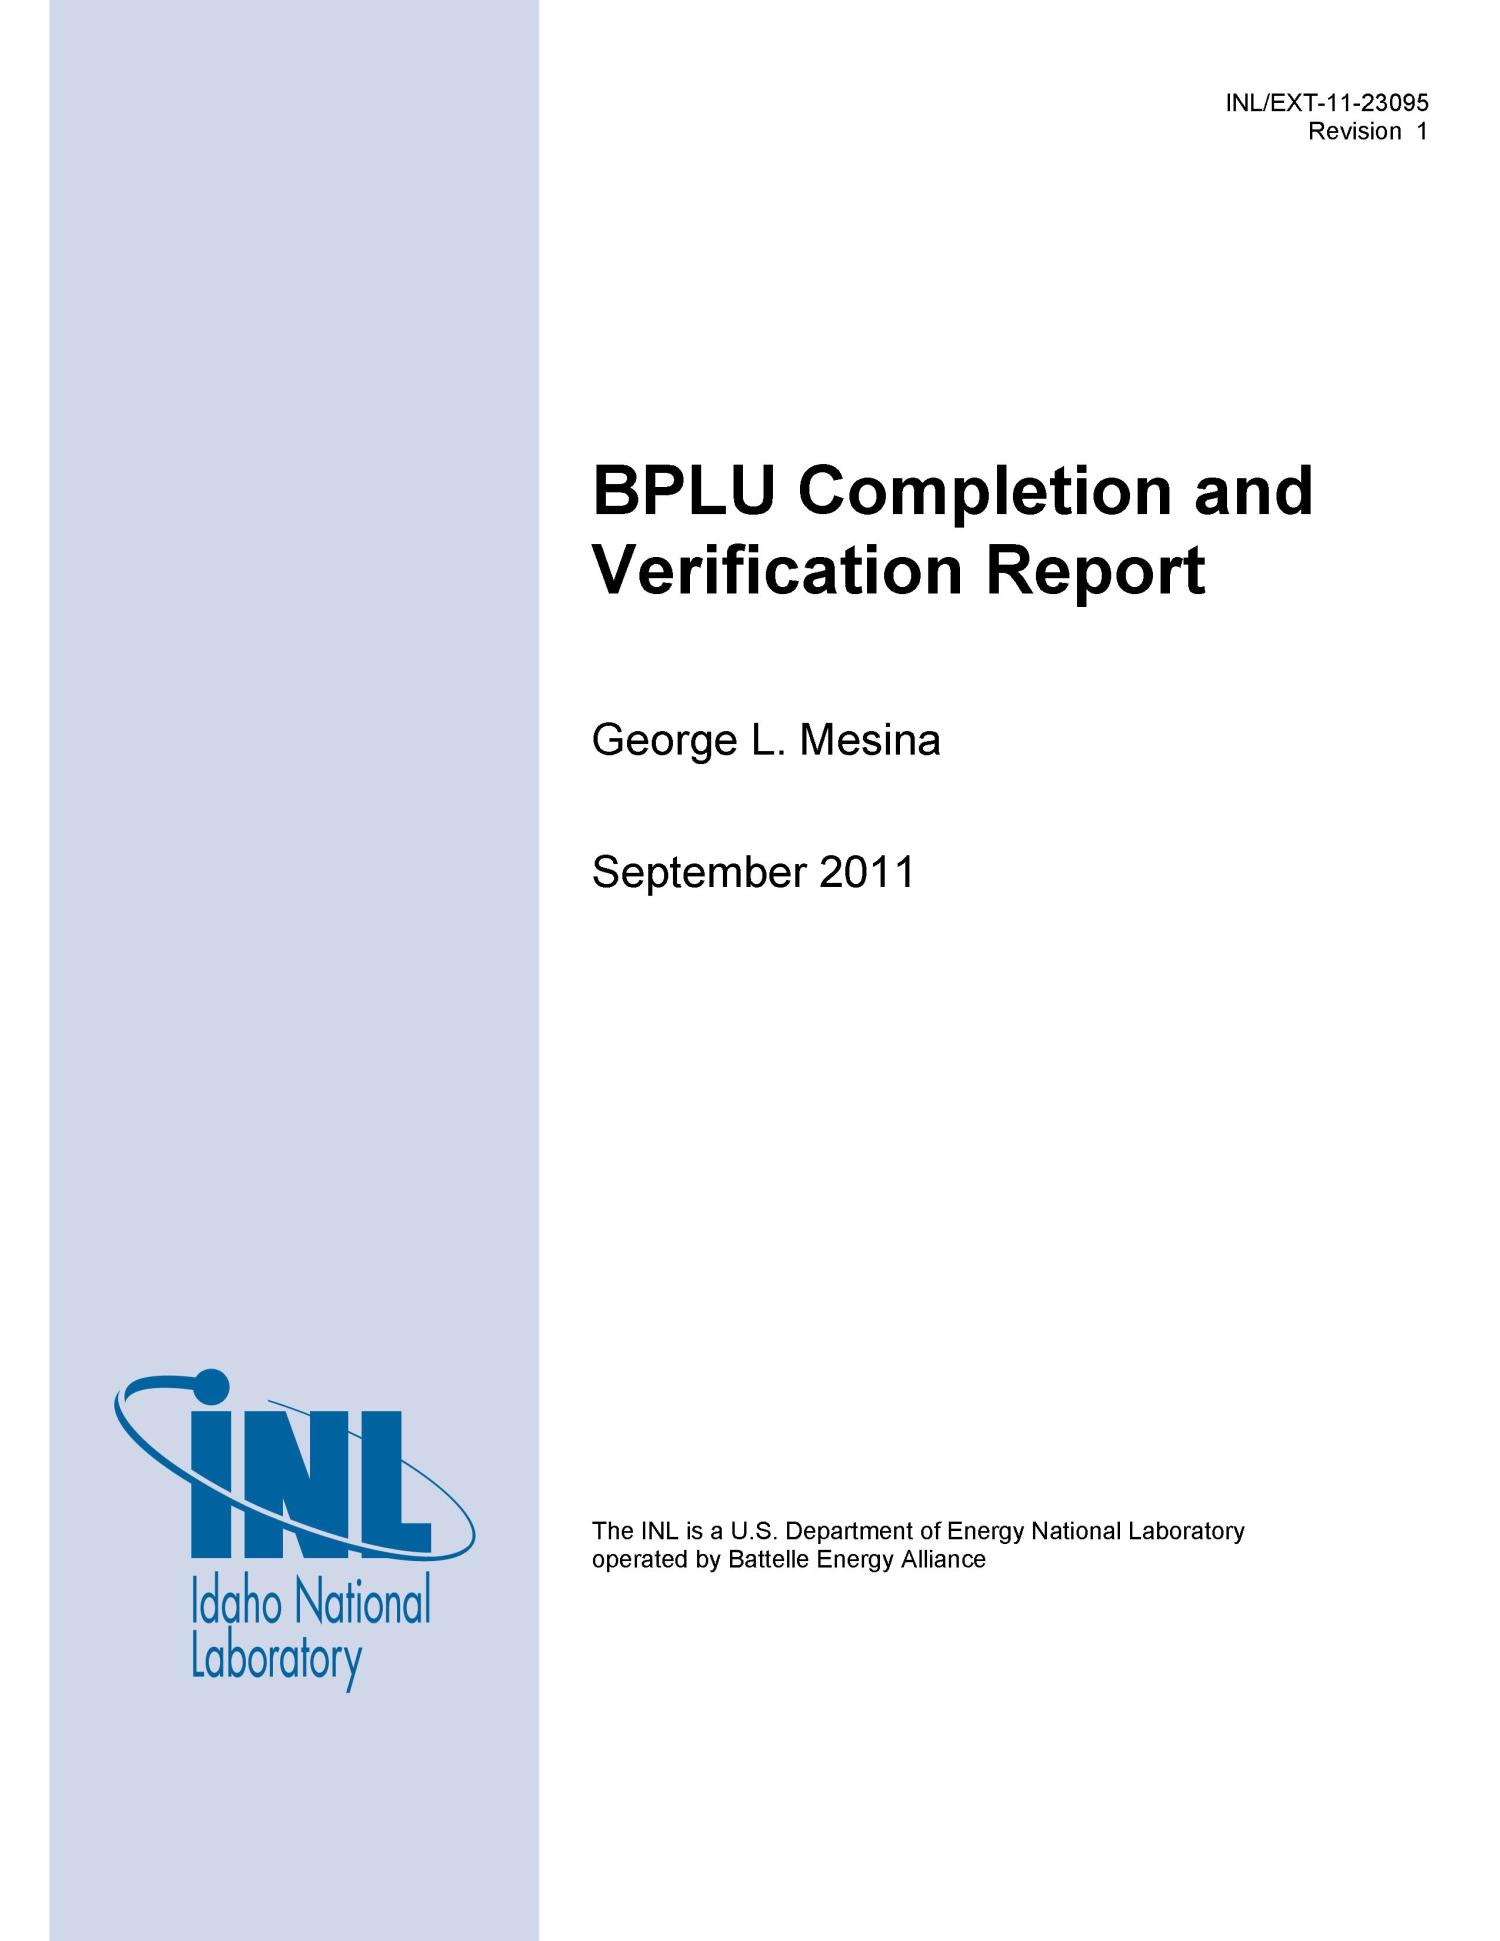 BPLU Completion and Verification Report                                                                                                      [Sequence #]: 1 of 34